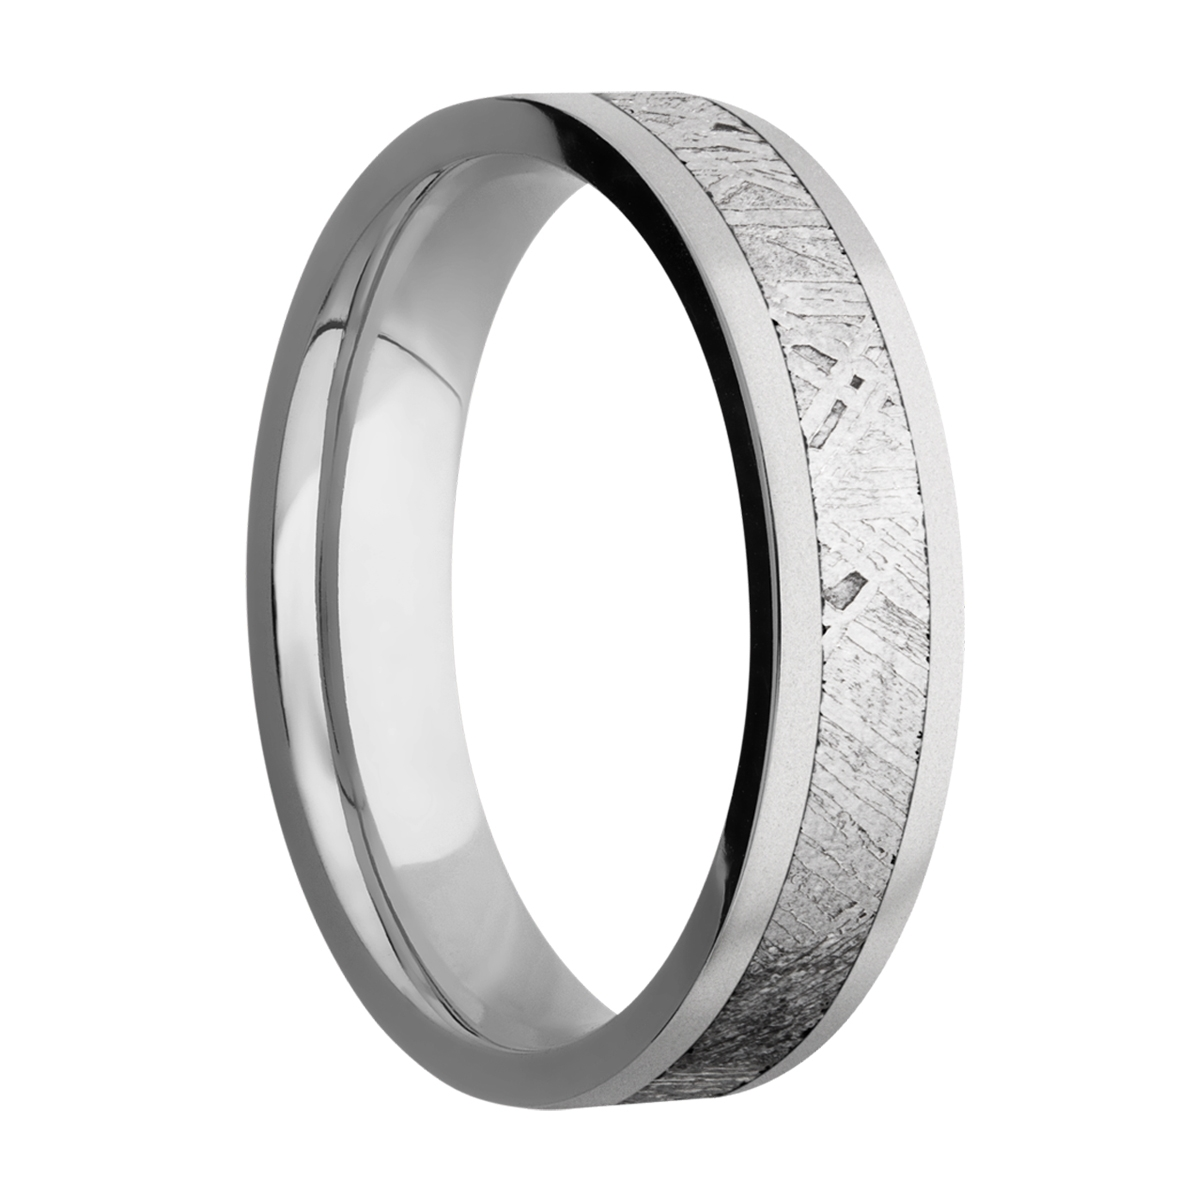 Lashbrook 5F13/METEORITE Titanium Wedding Ring or Band Alternative View 1